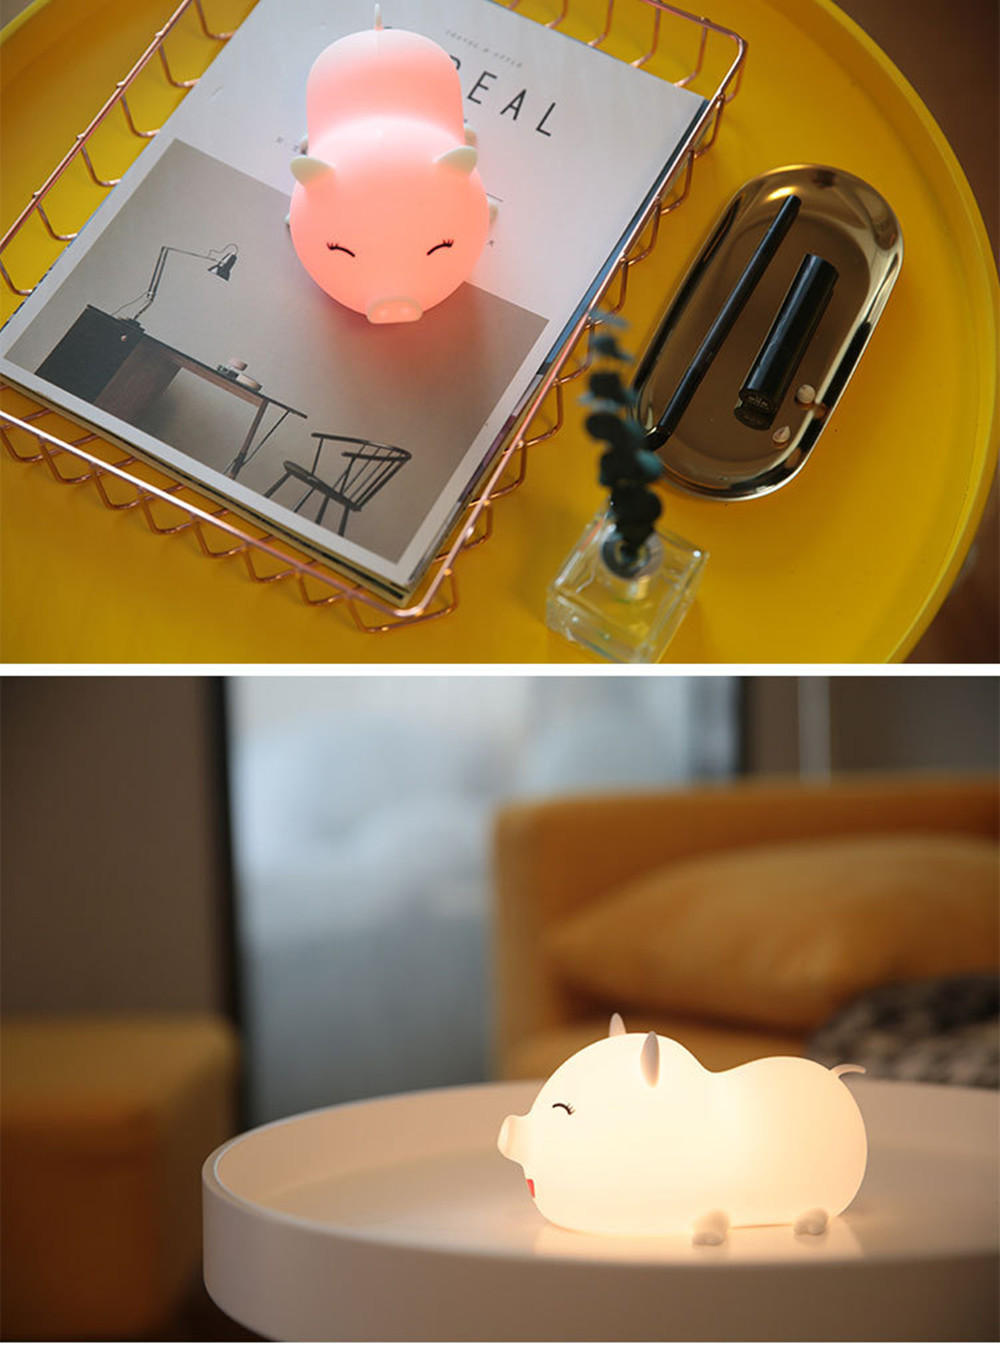 SuperNight Cute Pig LED Night Light Rechargeable Colorful Silicone Animal Touch Sensor Table Lamp Baby Kids Bedroom Bedside Lamp (5)